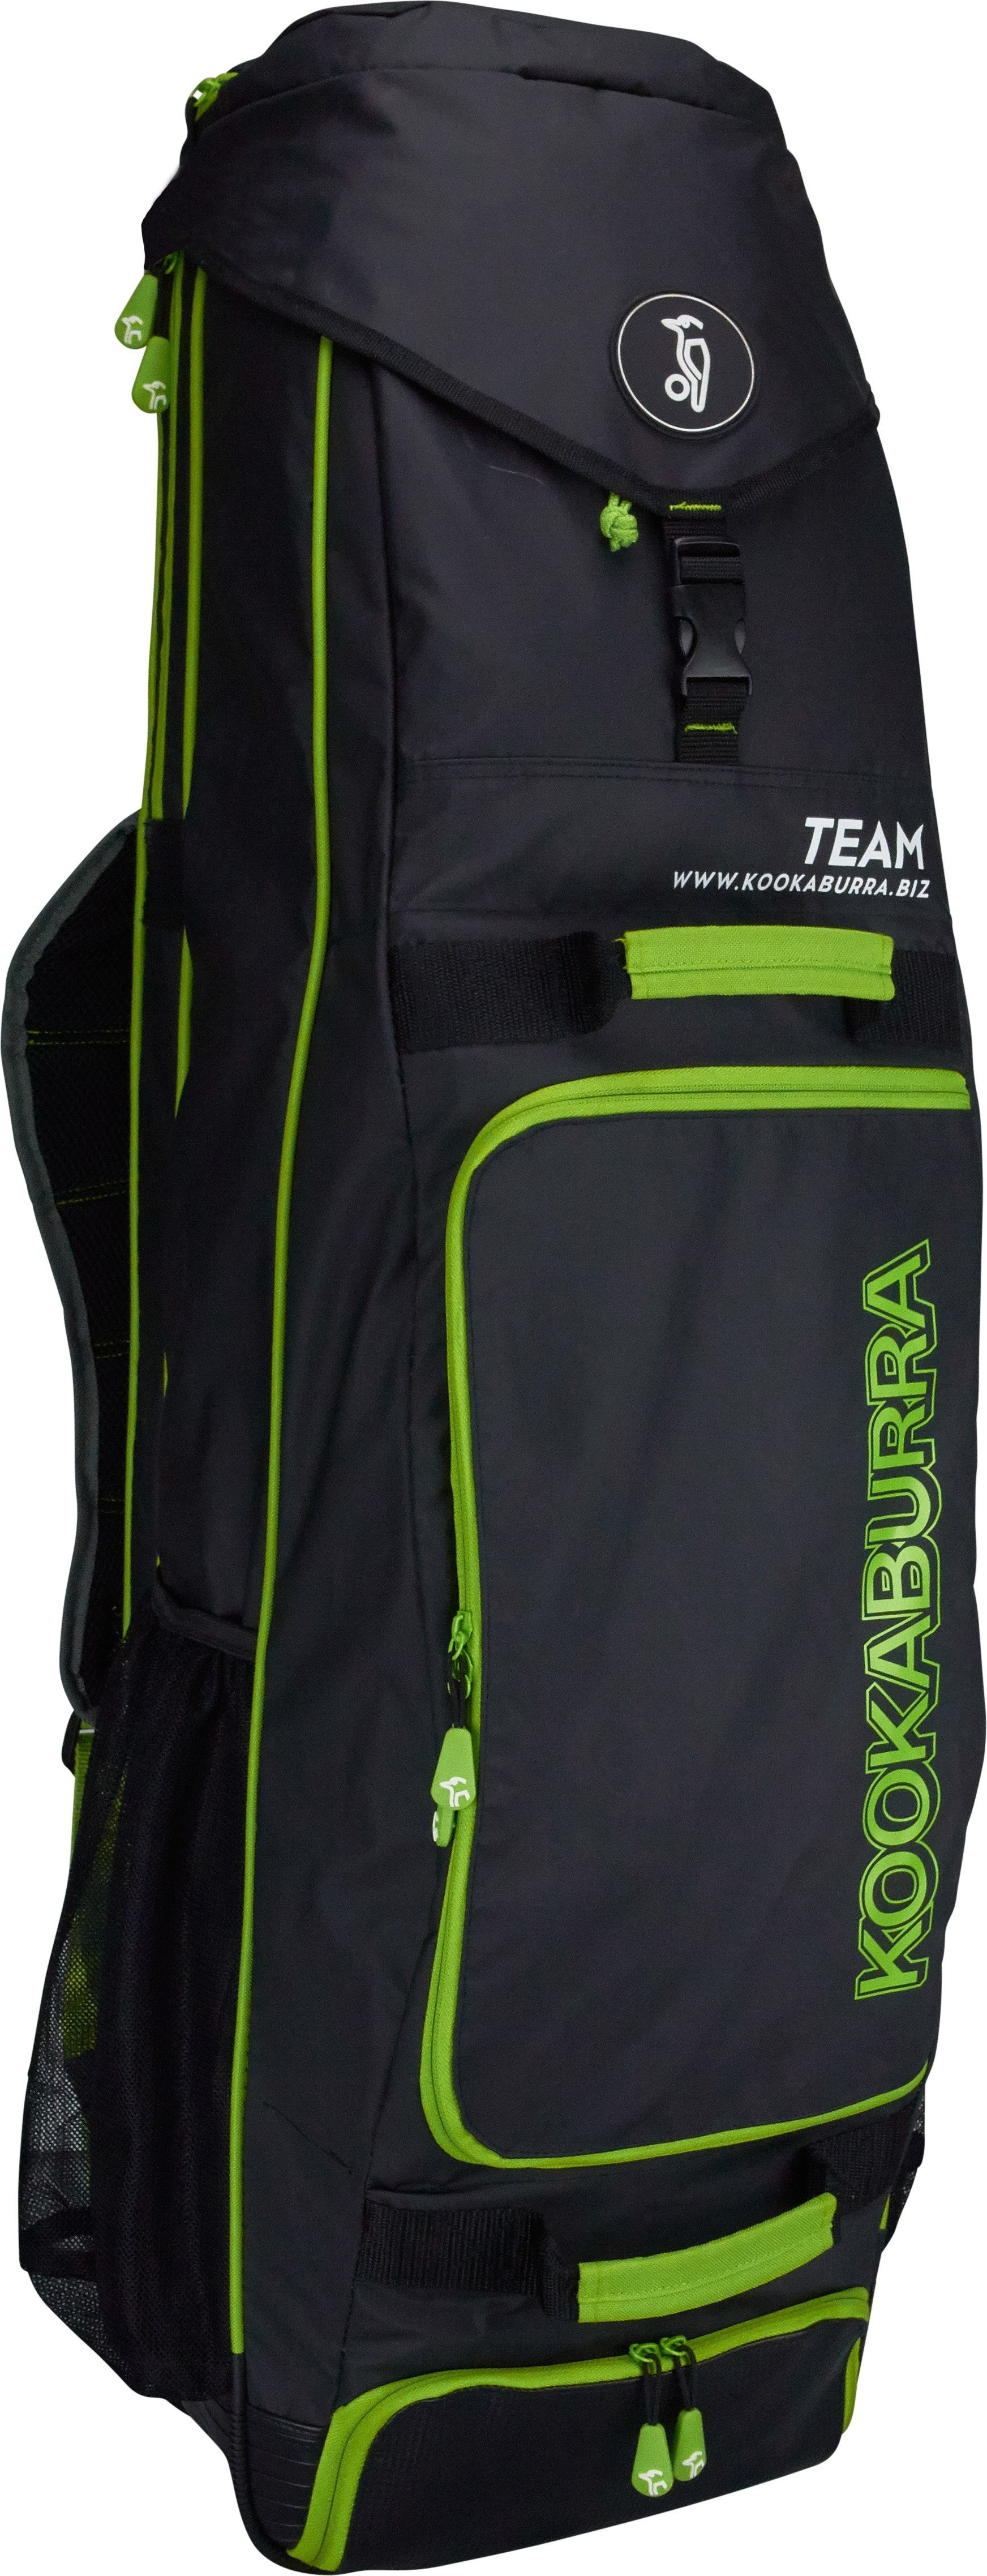 2017/18 Kookaburra Team - Black Hockey Bag